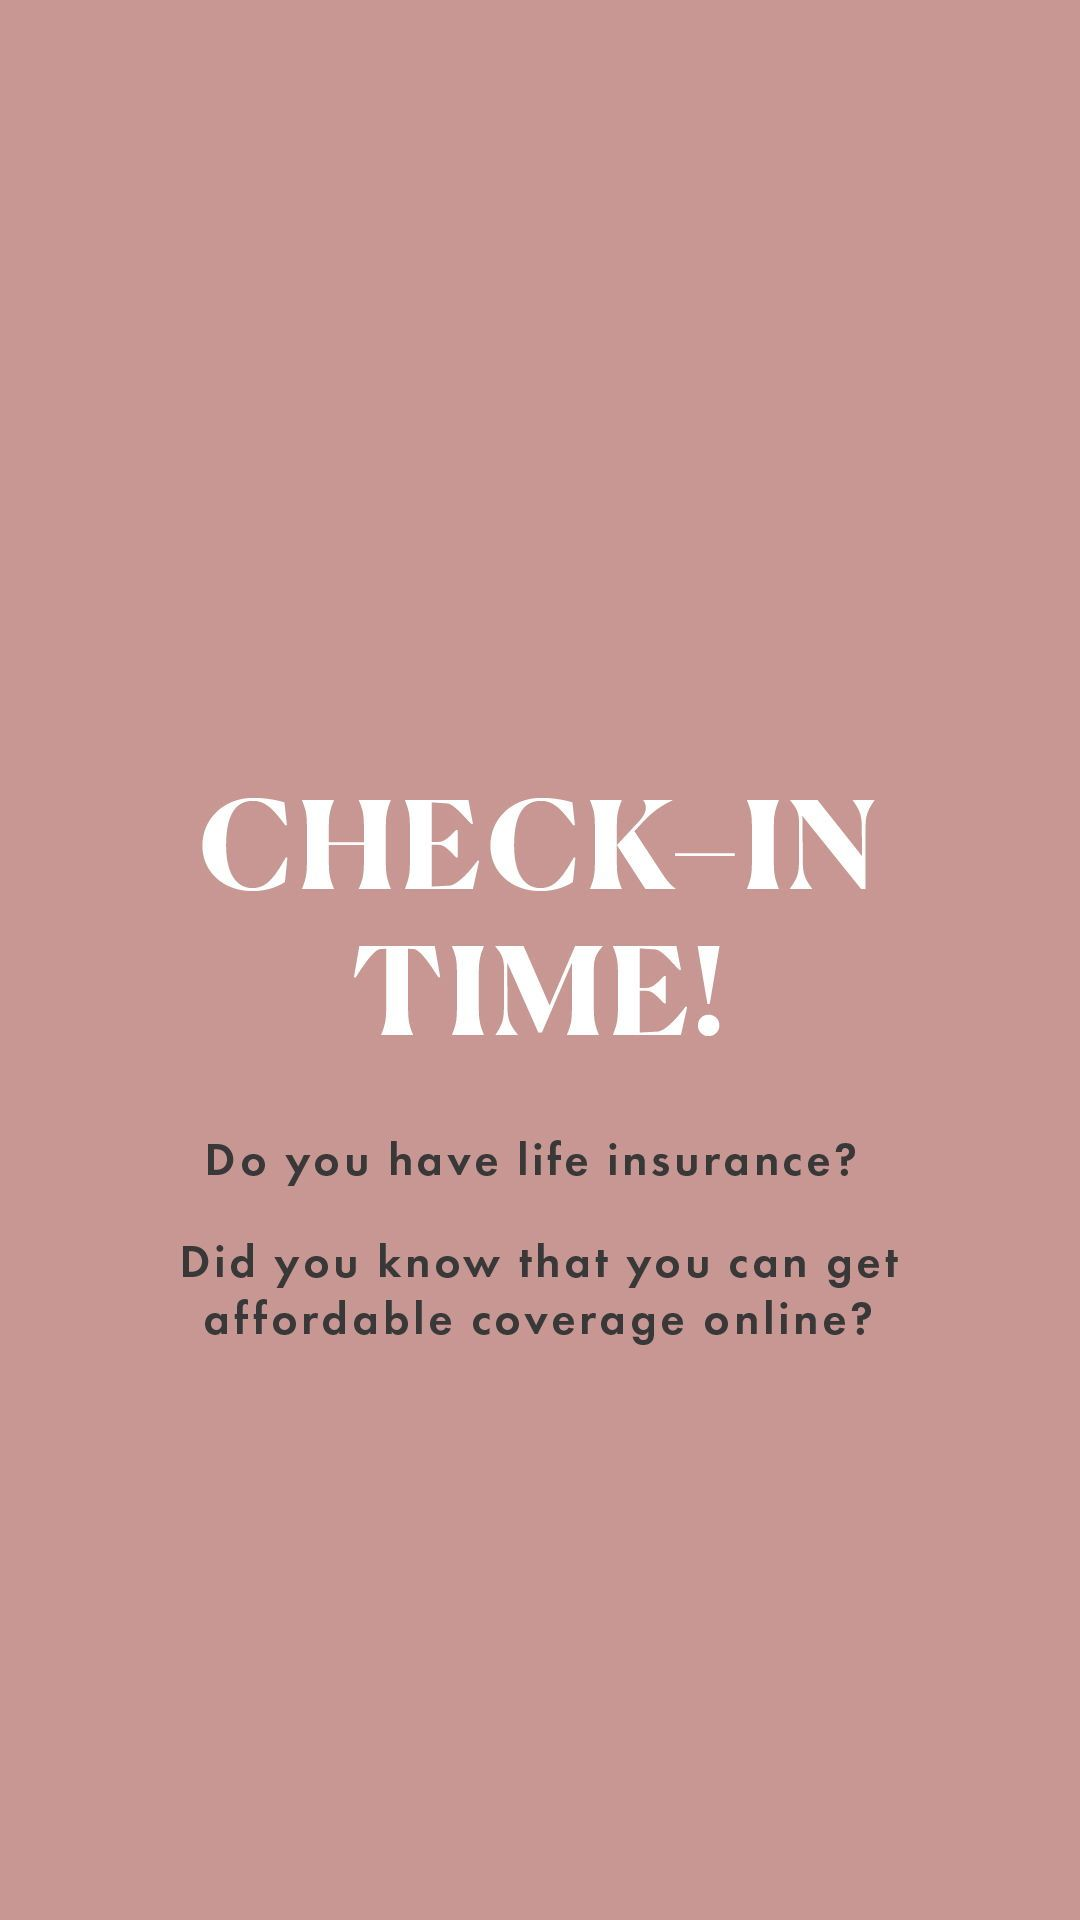 So Do You Have Life Insurance Yet Product Term Life